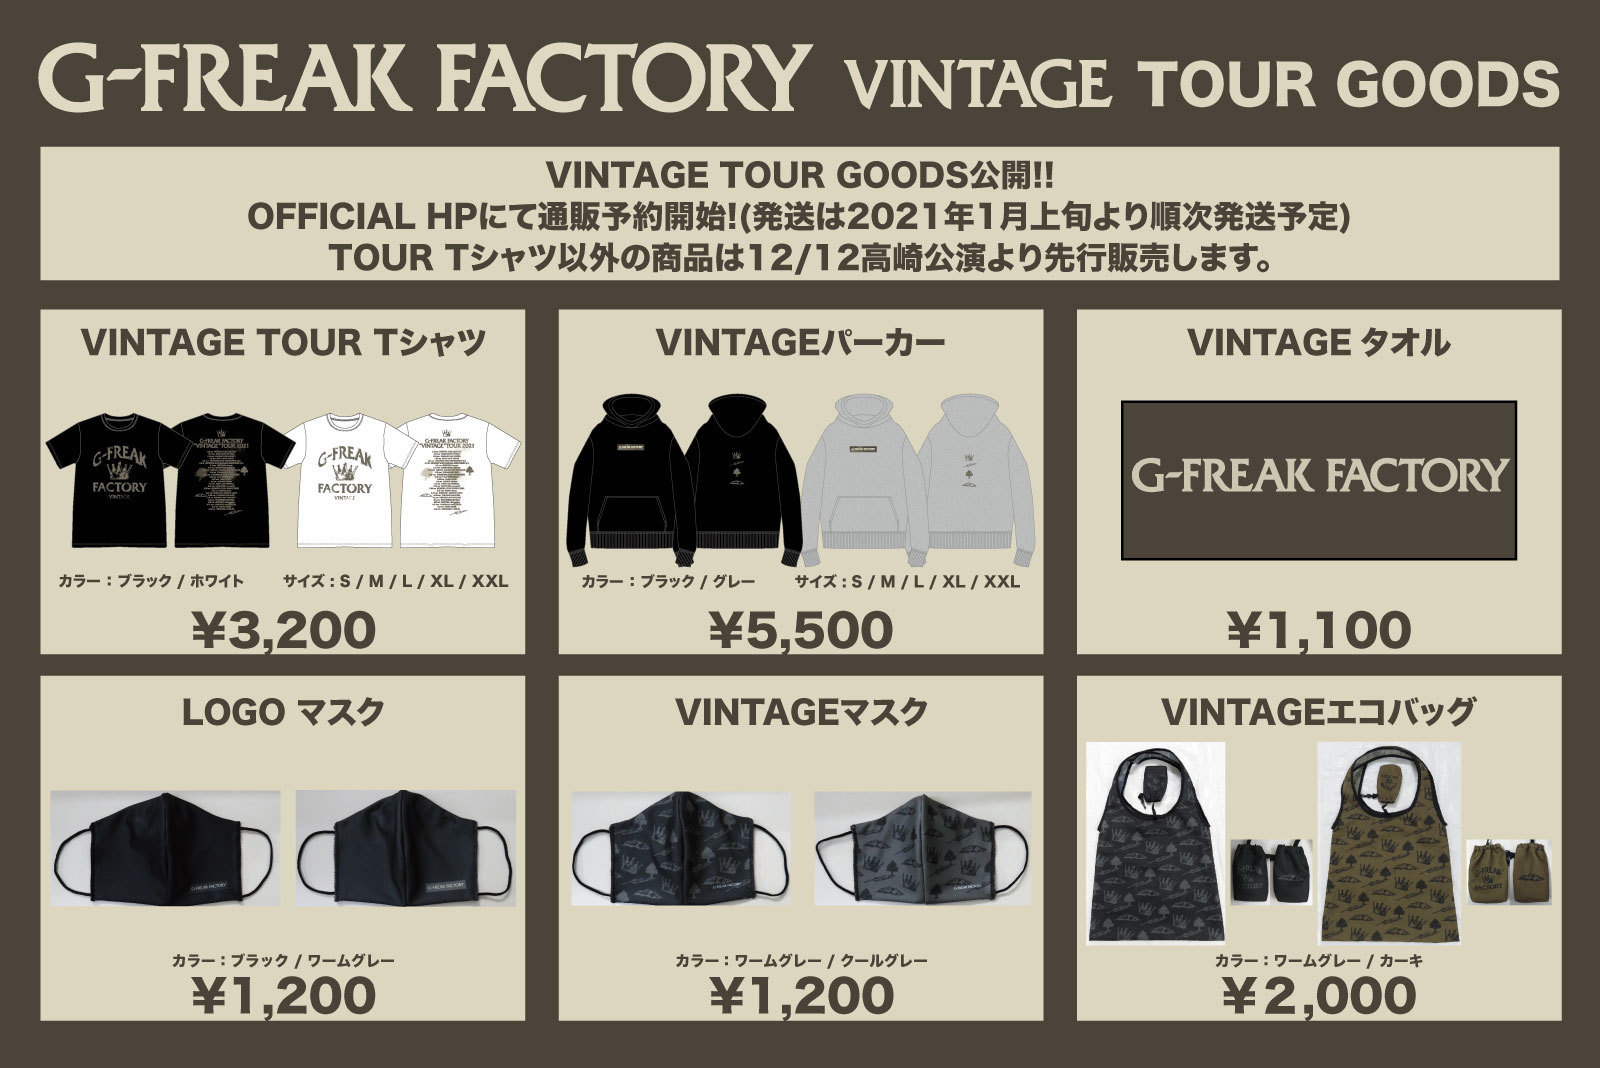 VINTAGE TOUR グッズ